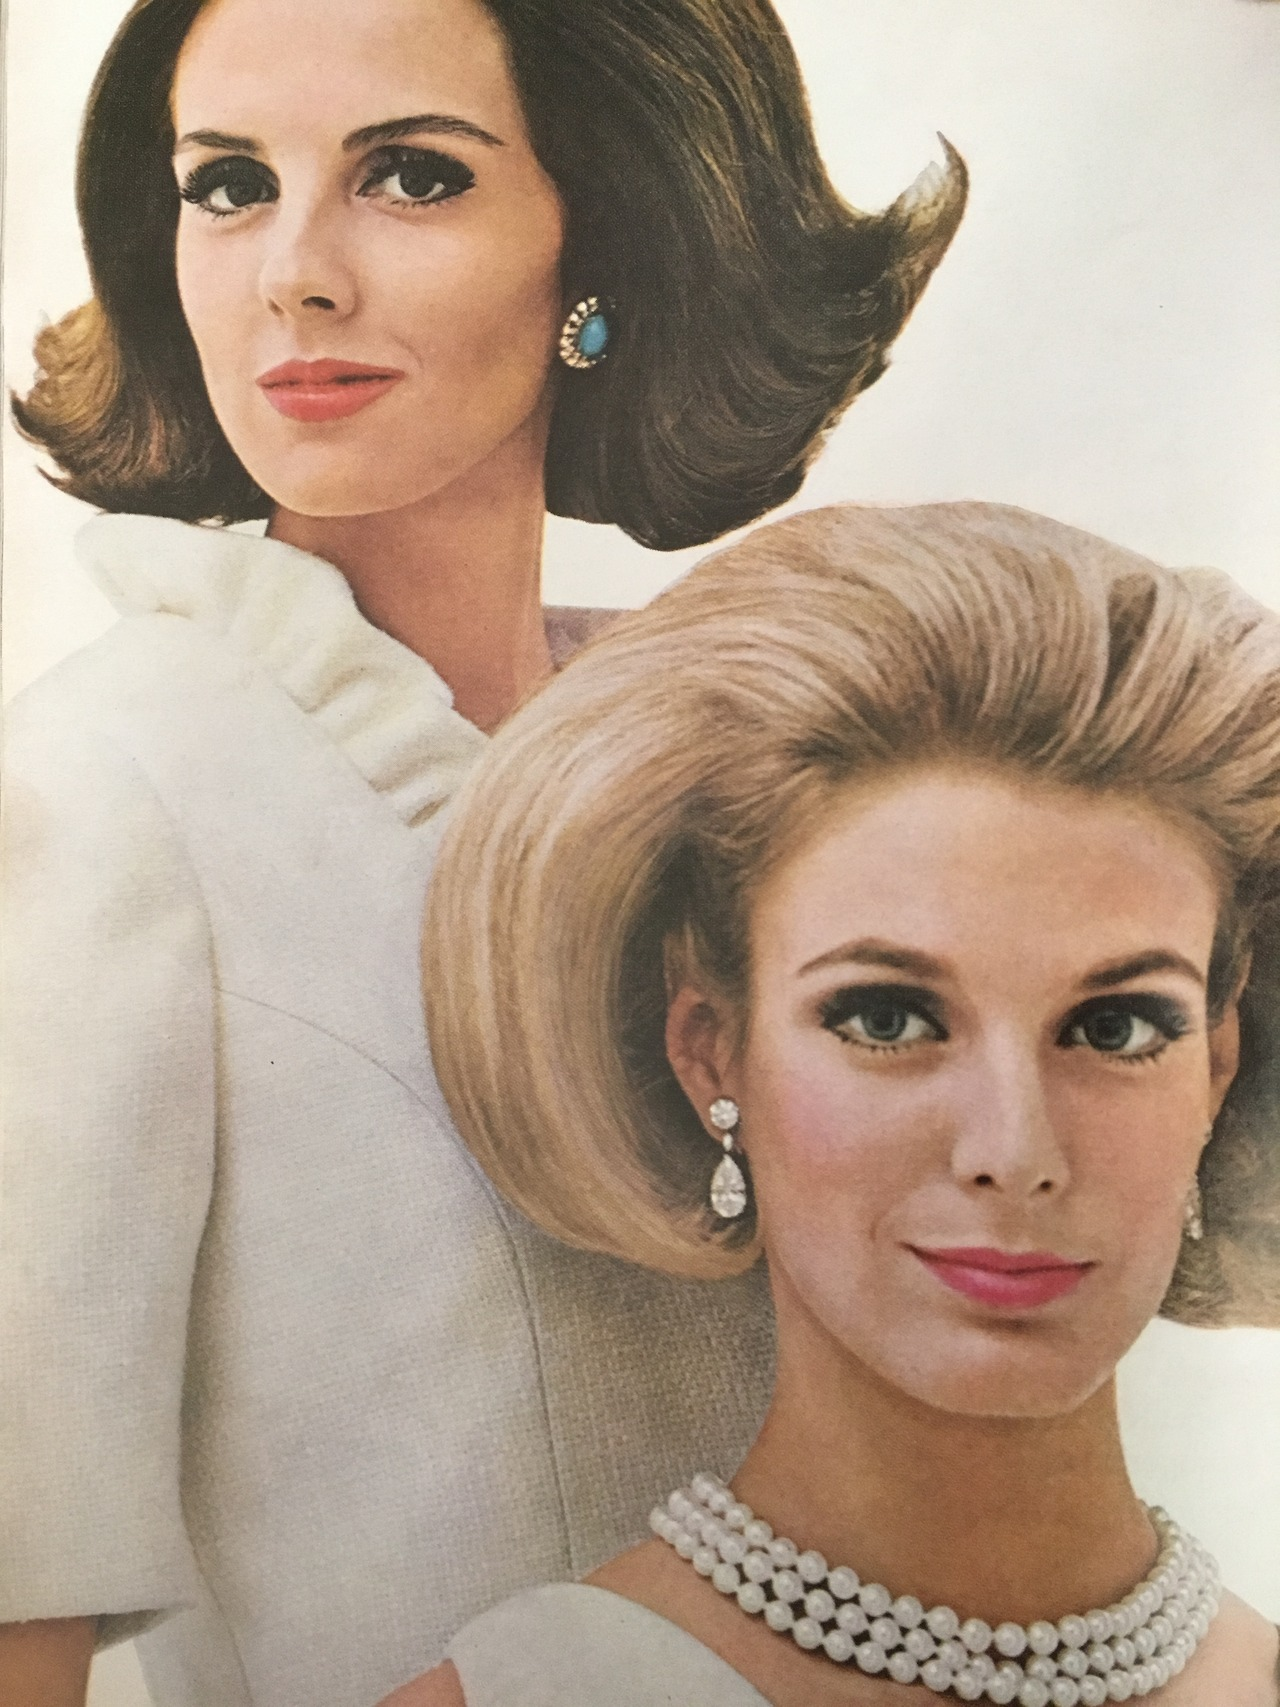 Coty.   Mademoiselle. May 1964.     Lots and lots of hair spray. And pearls.